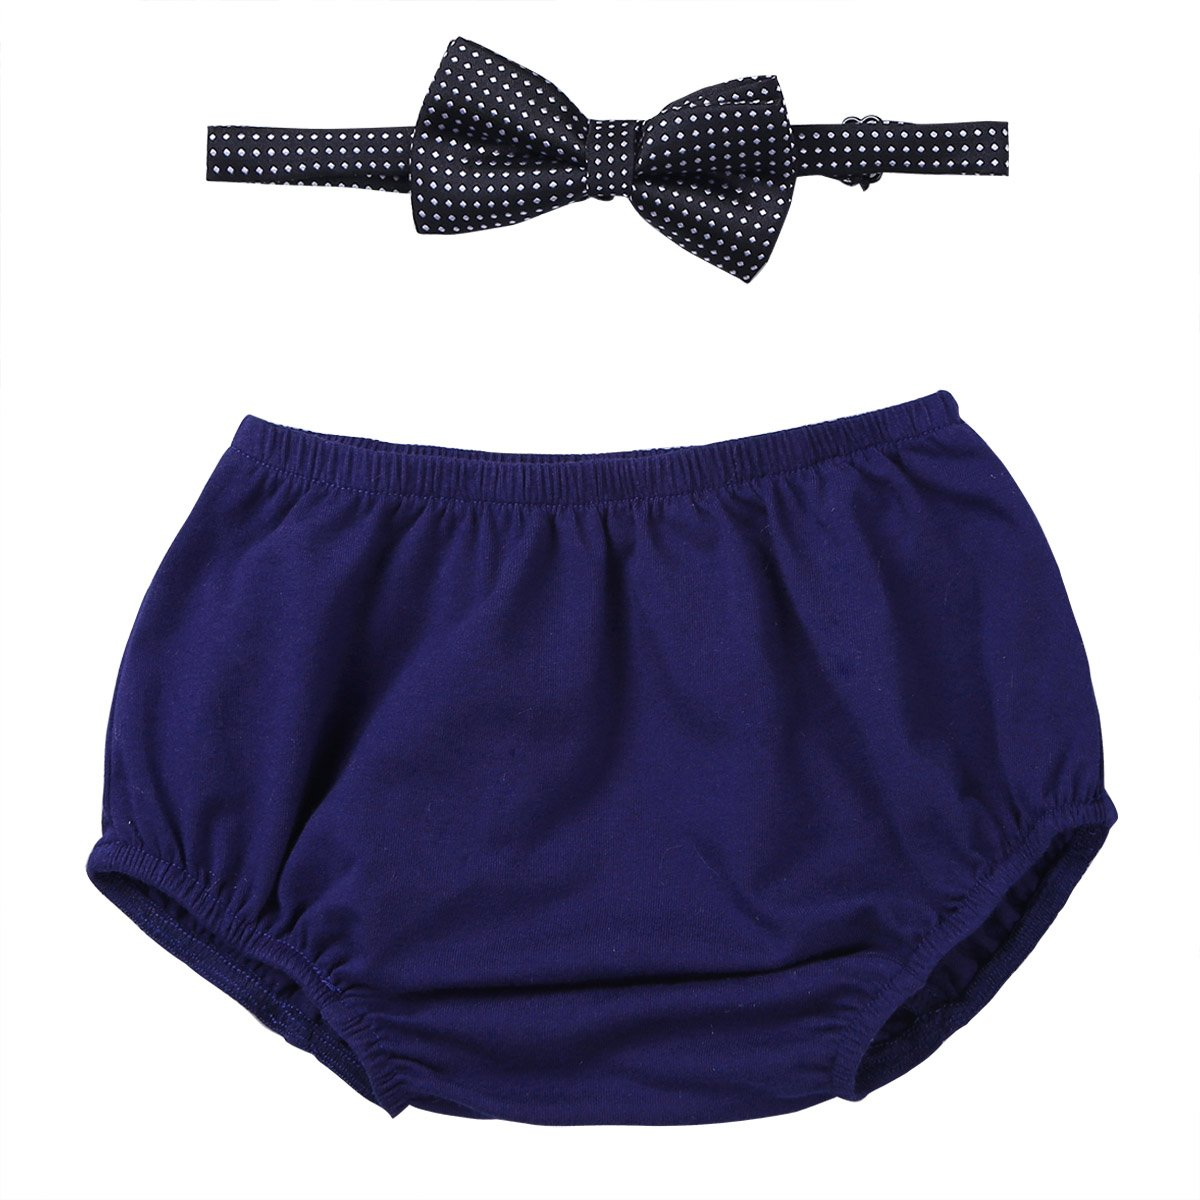 CHICTRY Baby Toddlers Boy Gentleman Formal Bowtie and Bloomer Shorts 1st Cake Smash Set